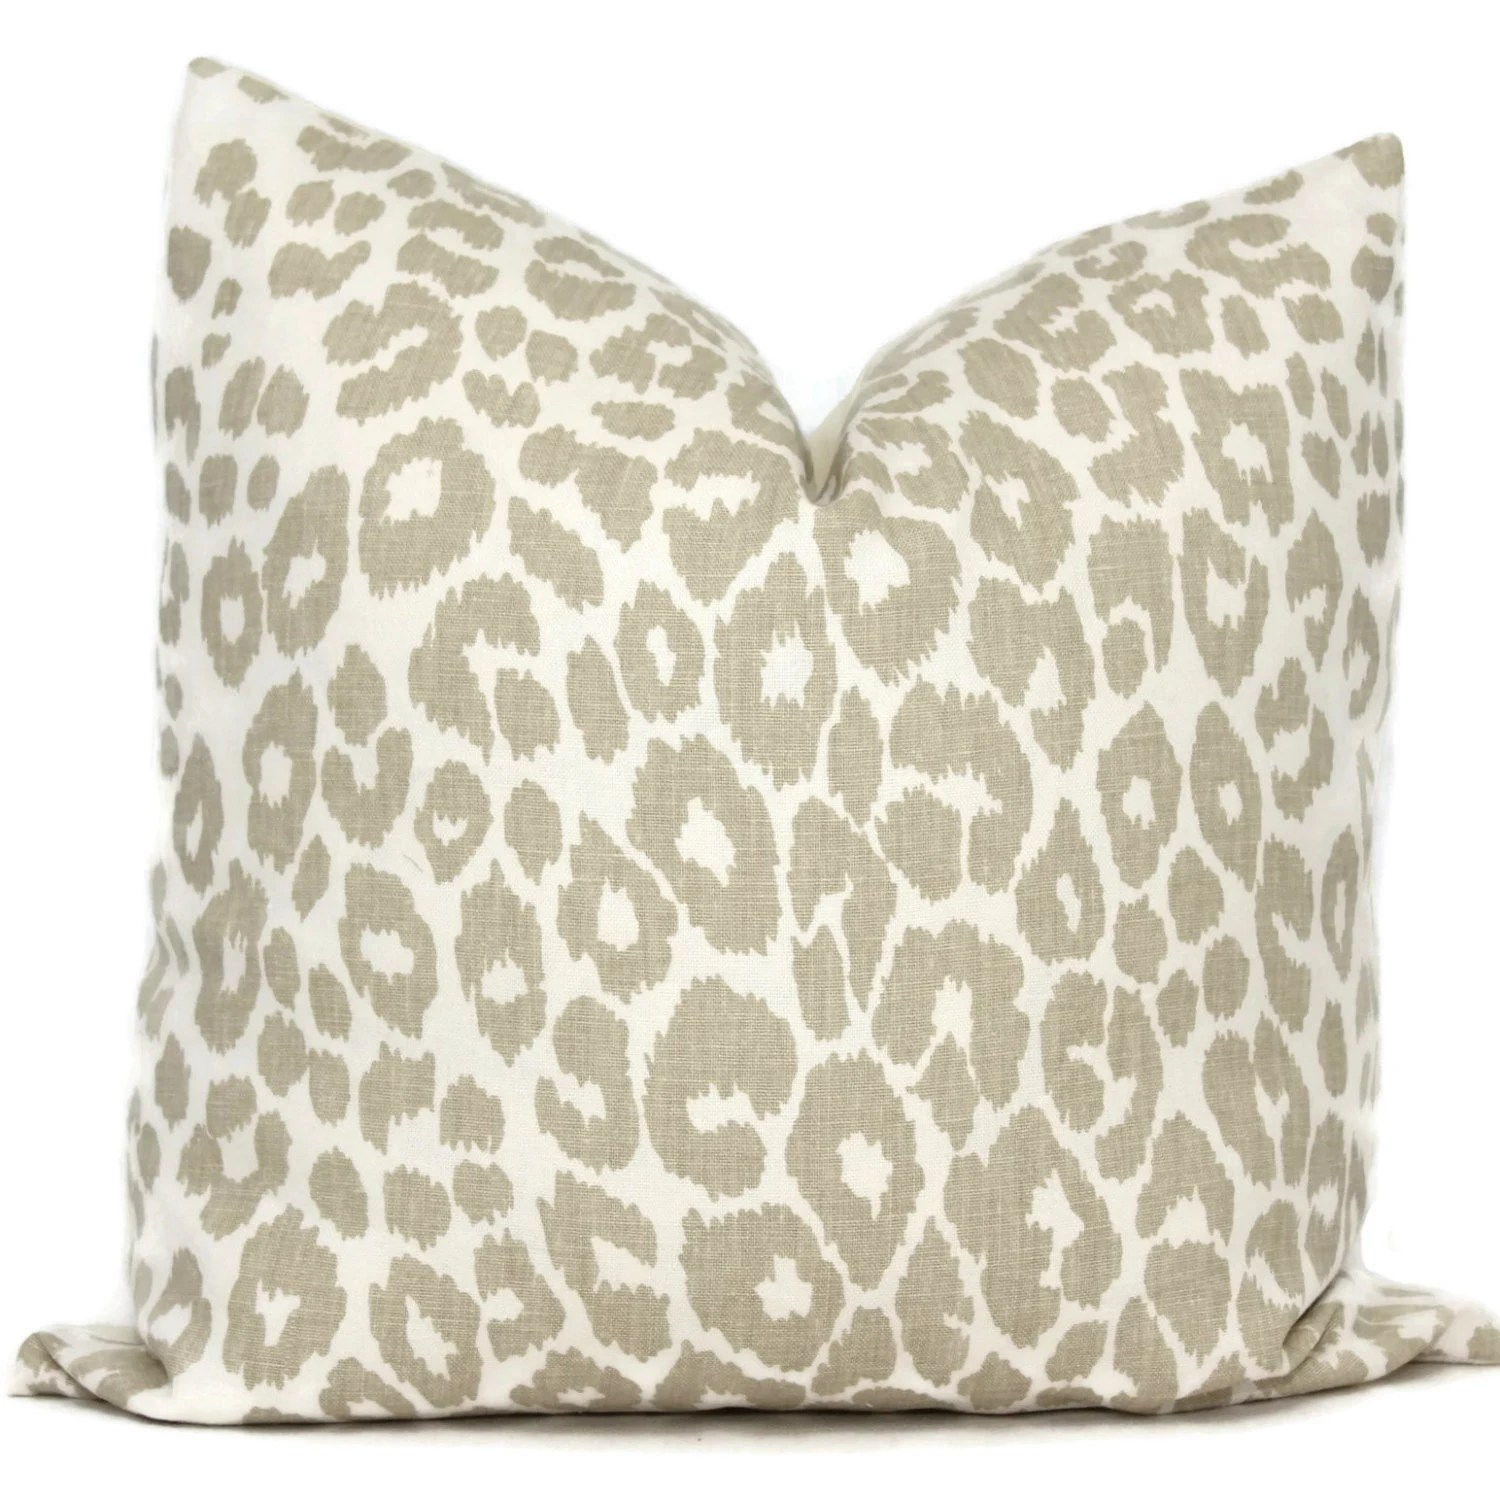 Schumacher Iconic Leopard in Linen Decorative Pillow Cover